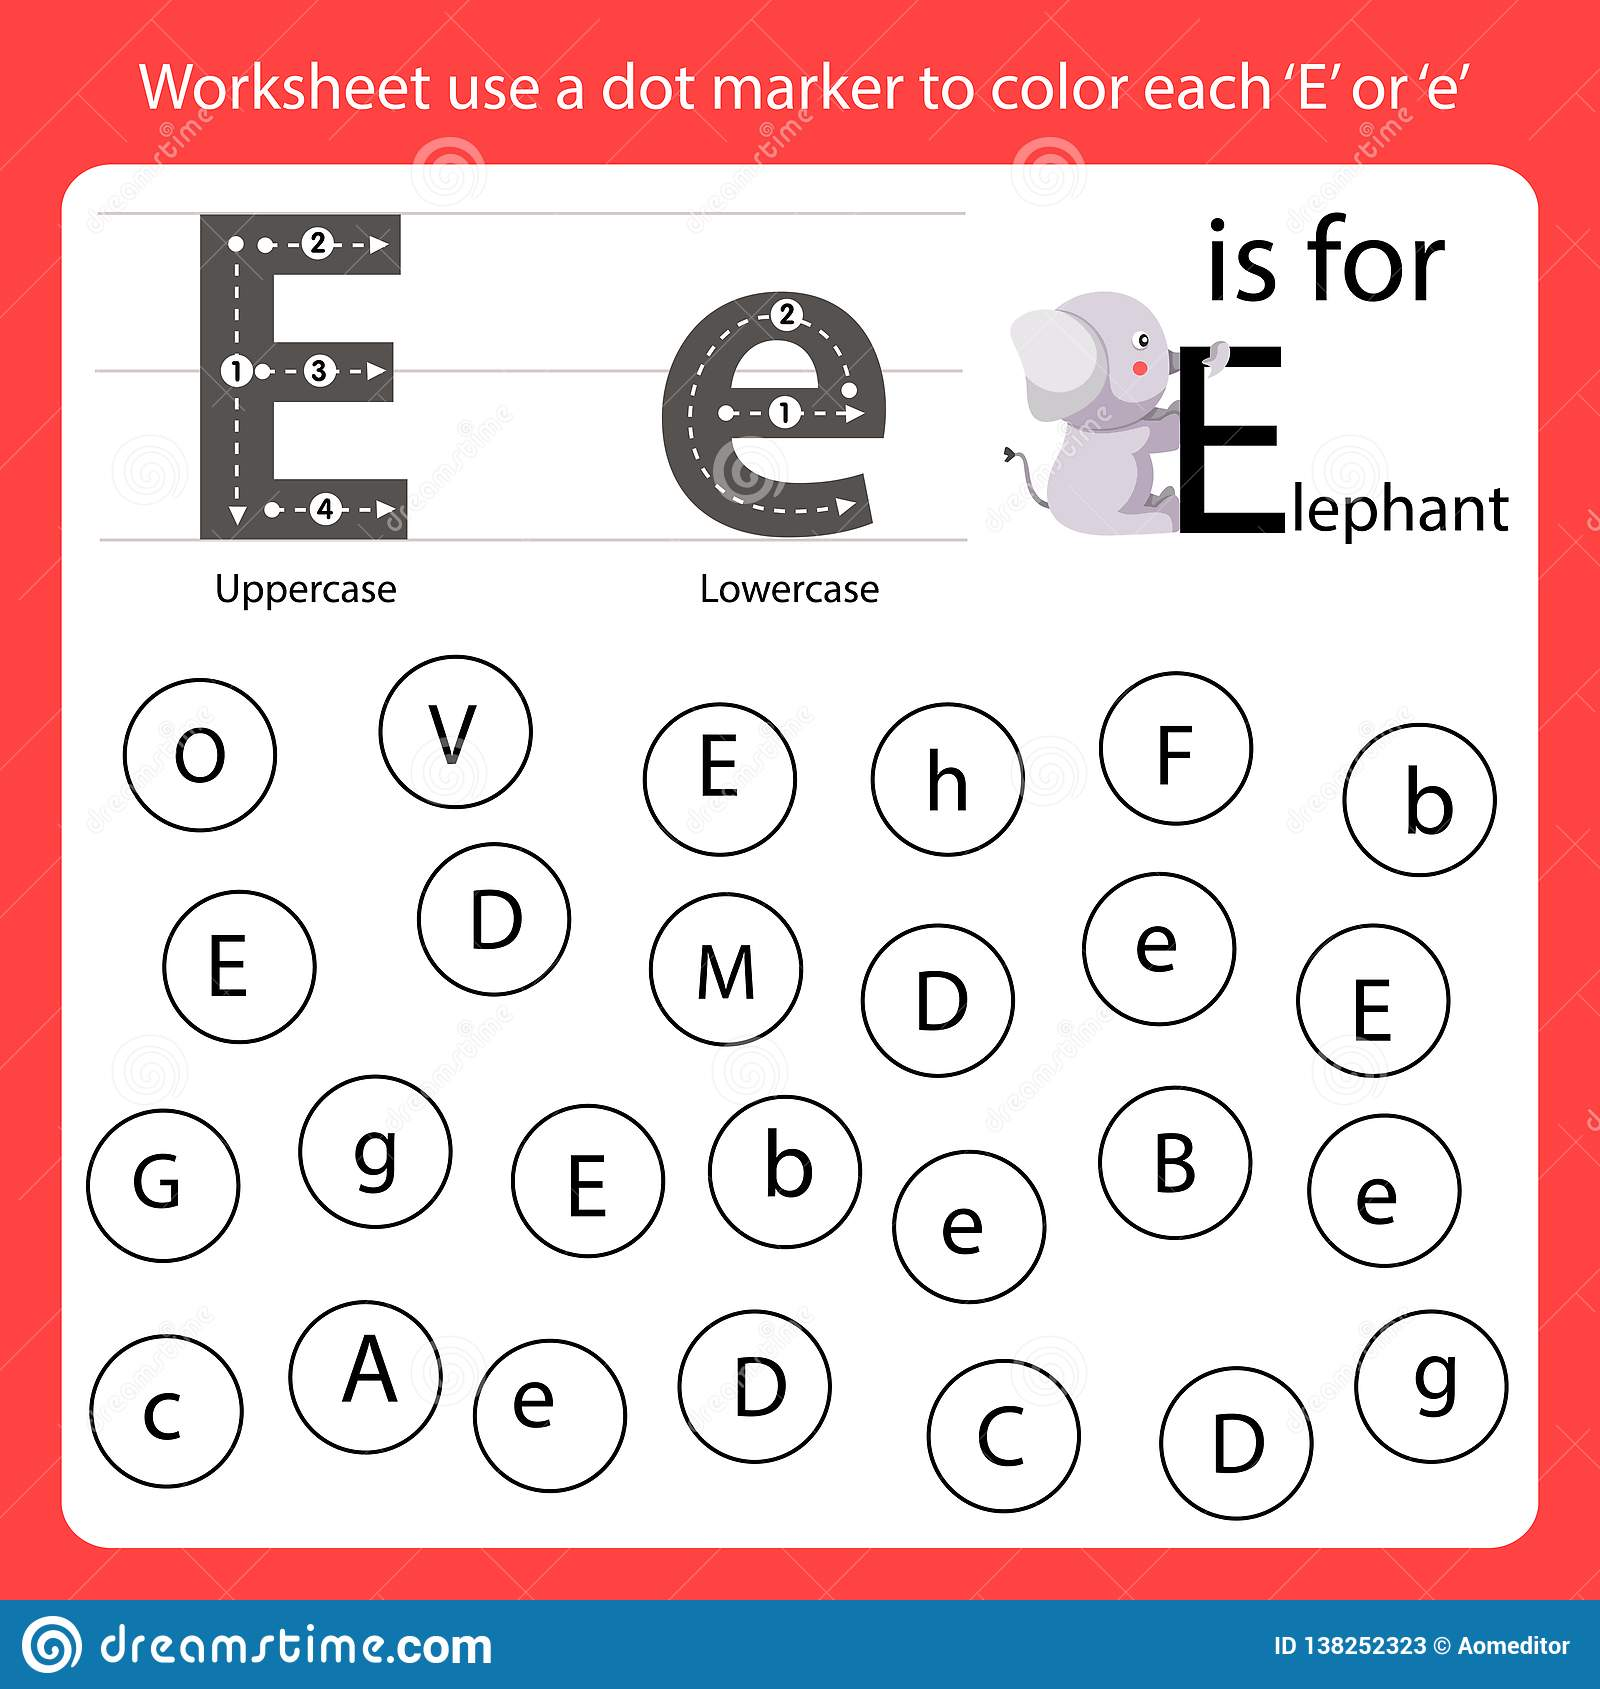 Find The Letter Worksheet Use A Dot Marker To Color Each E